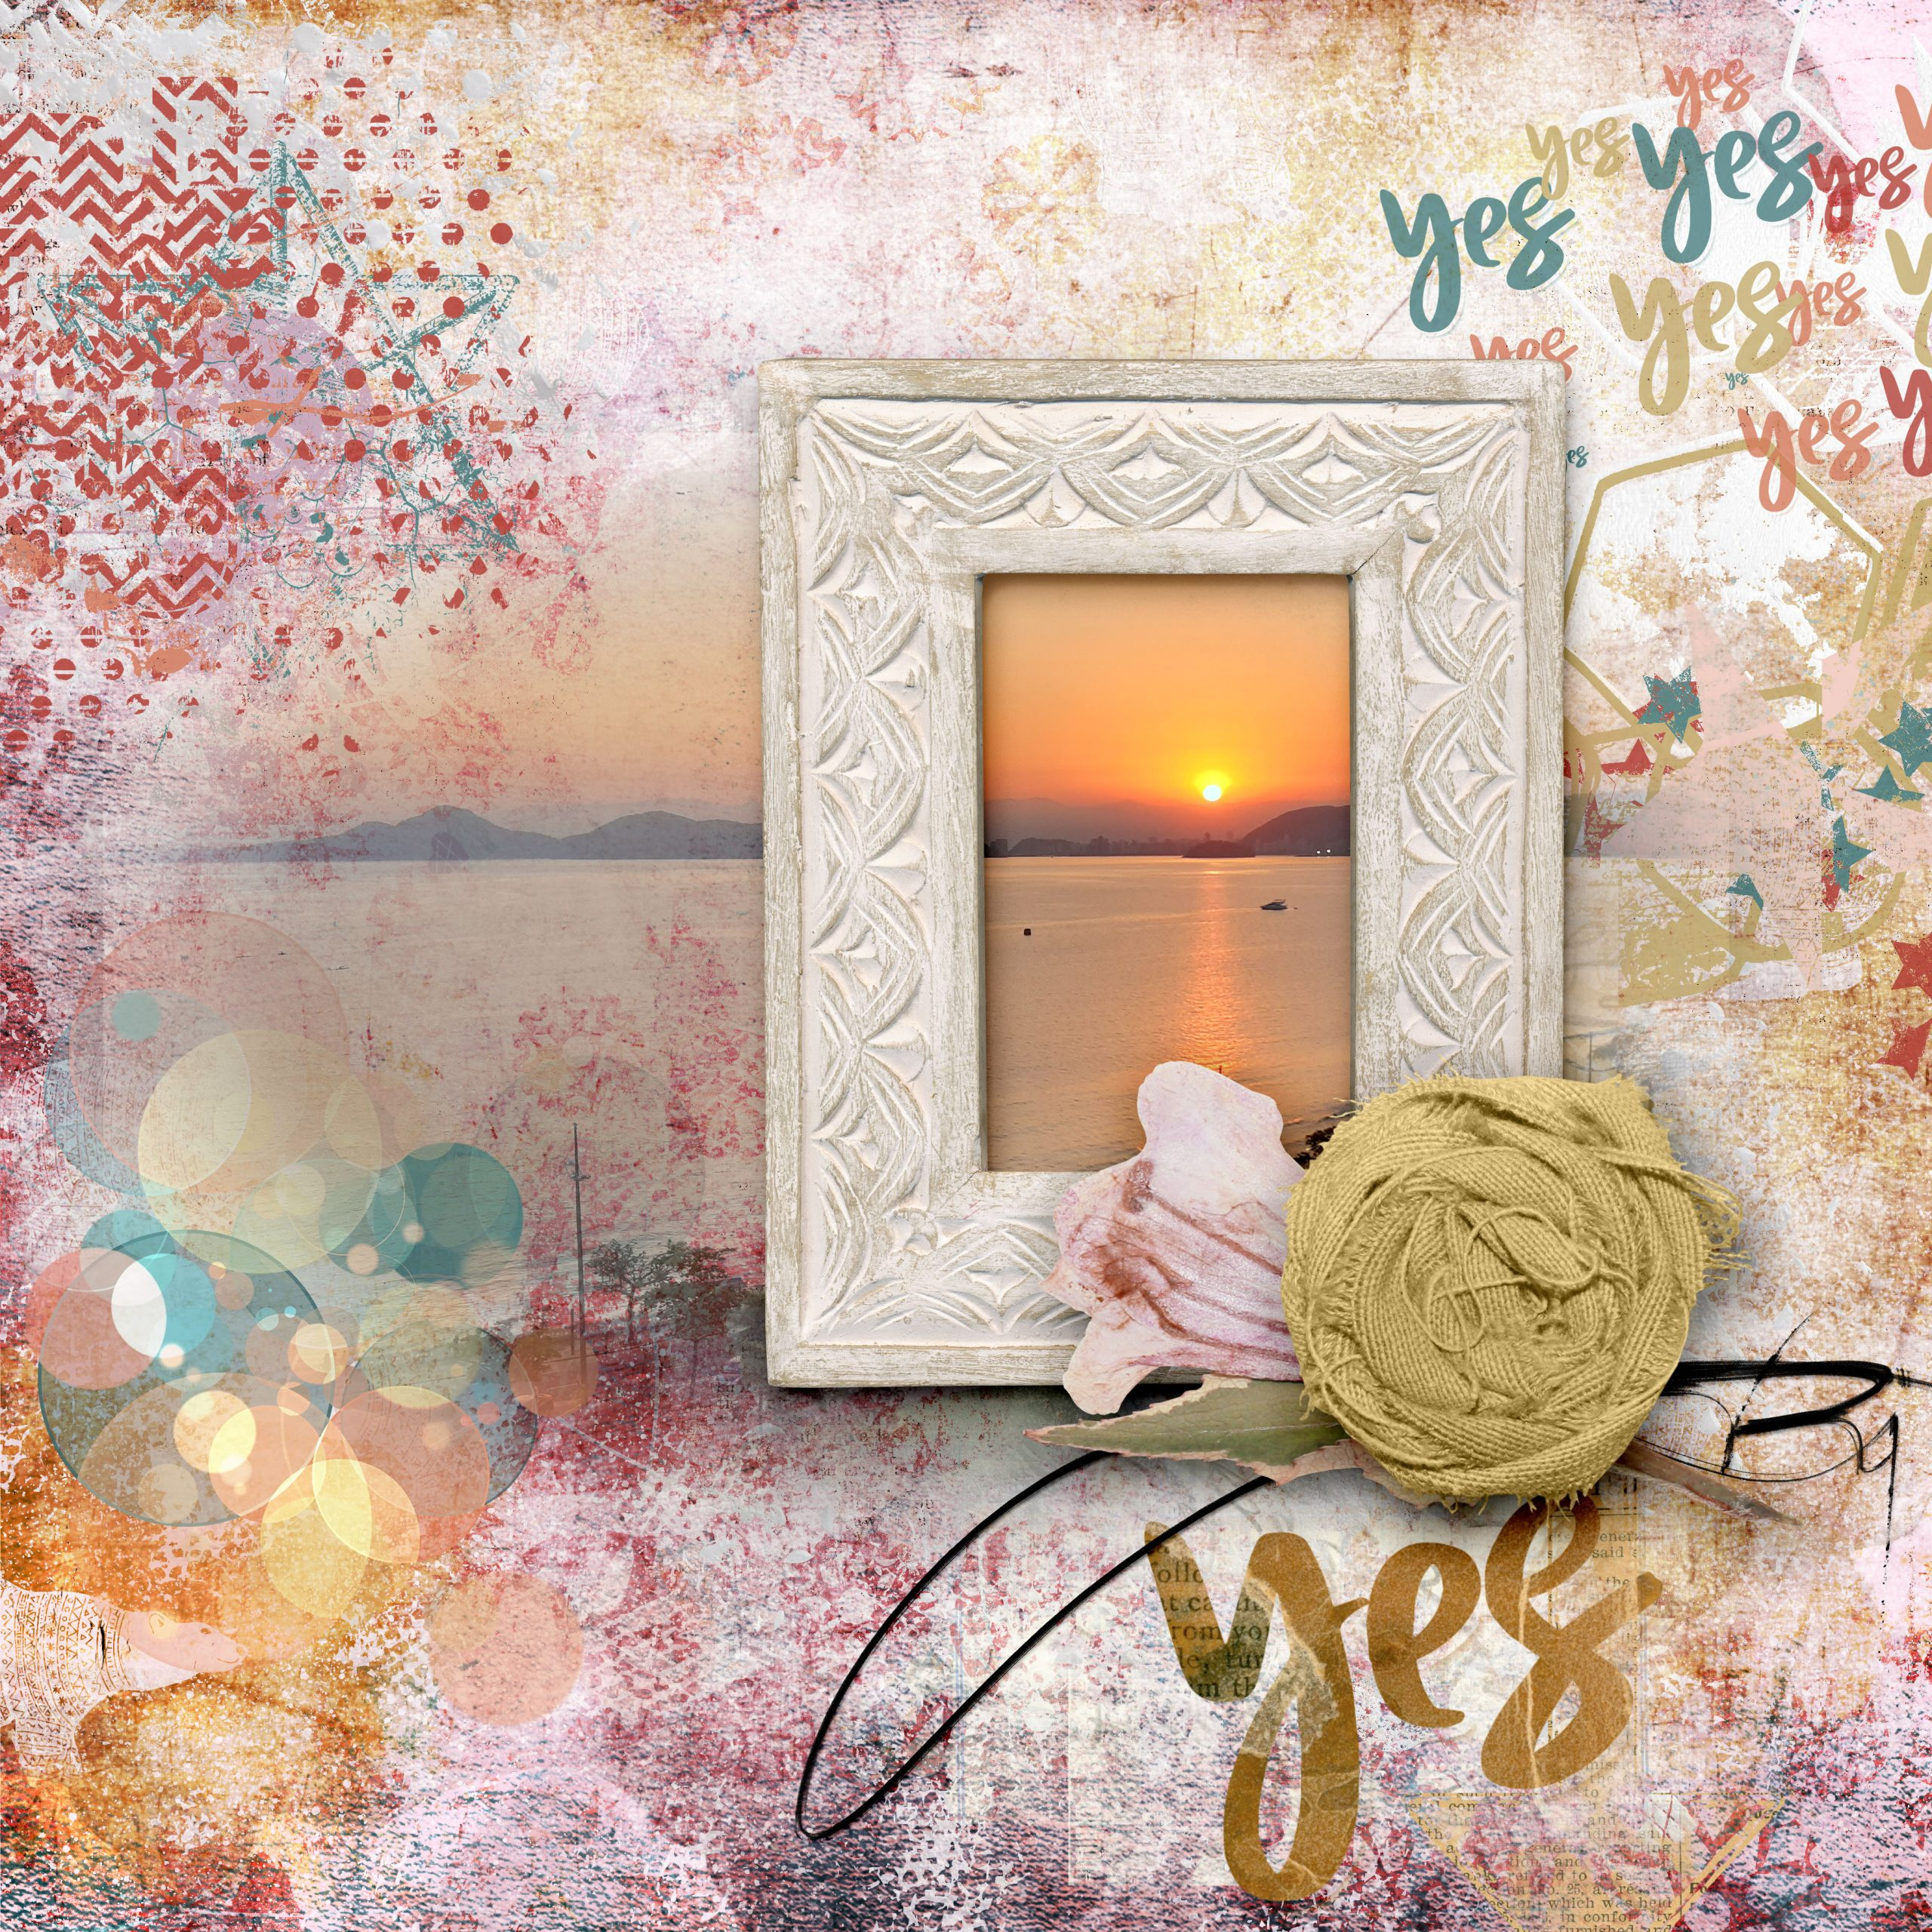 Yes! blog hop – today is the last day!